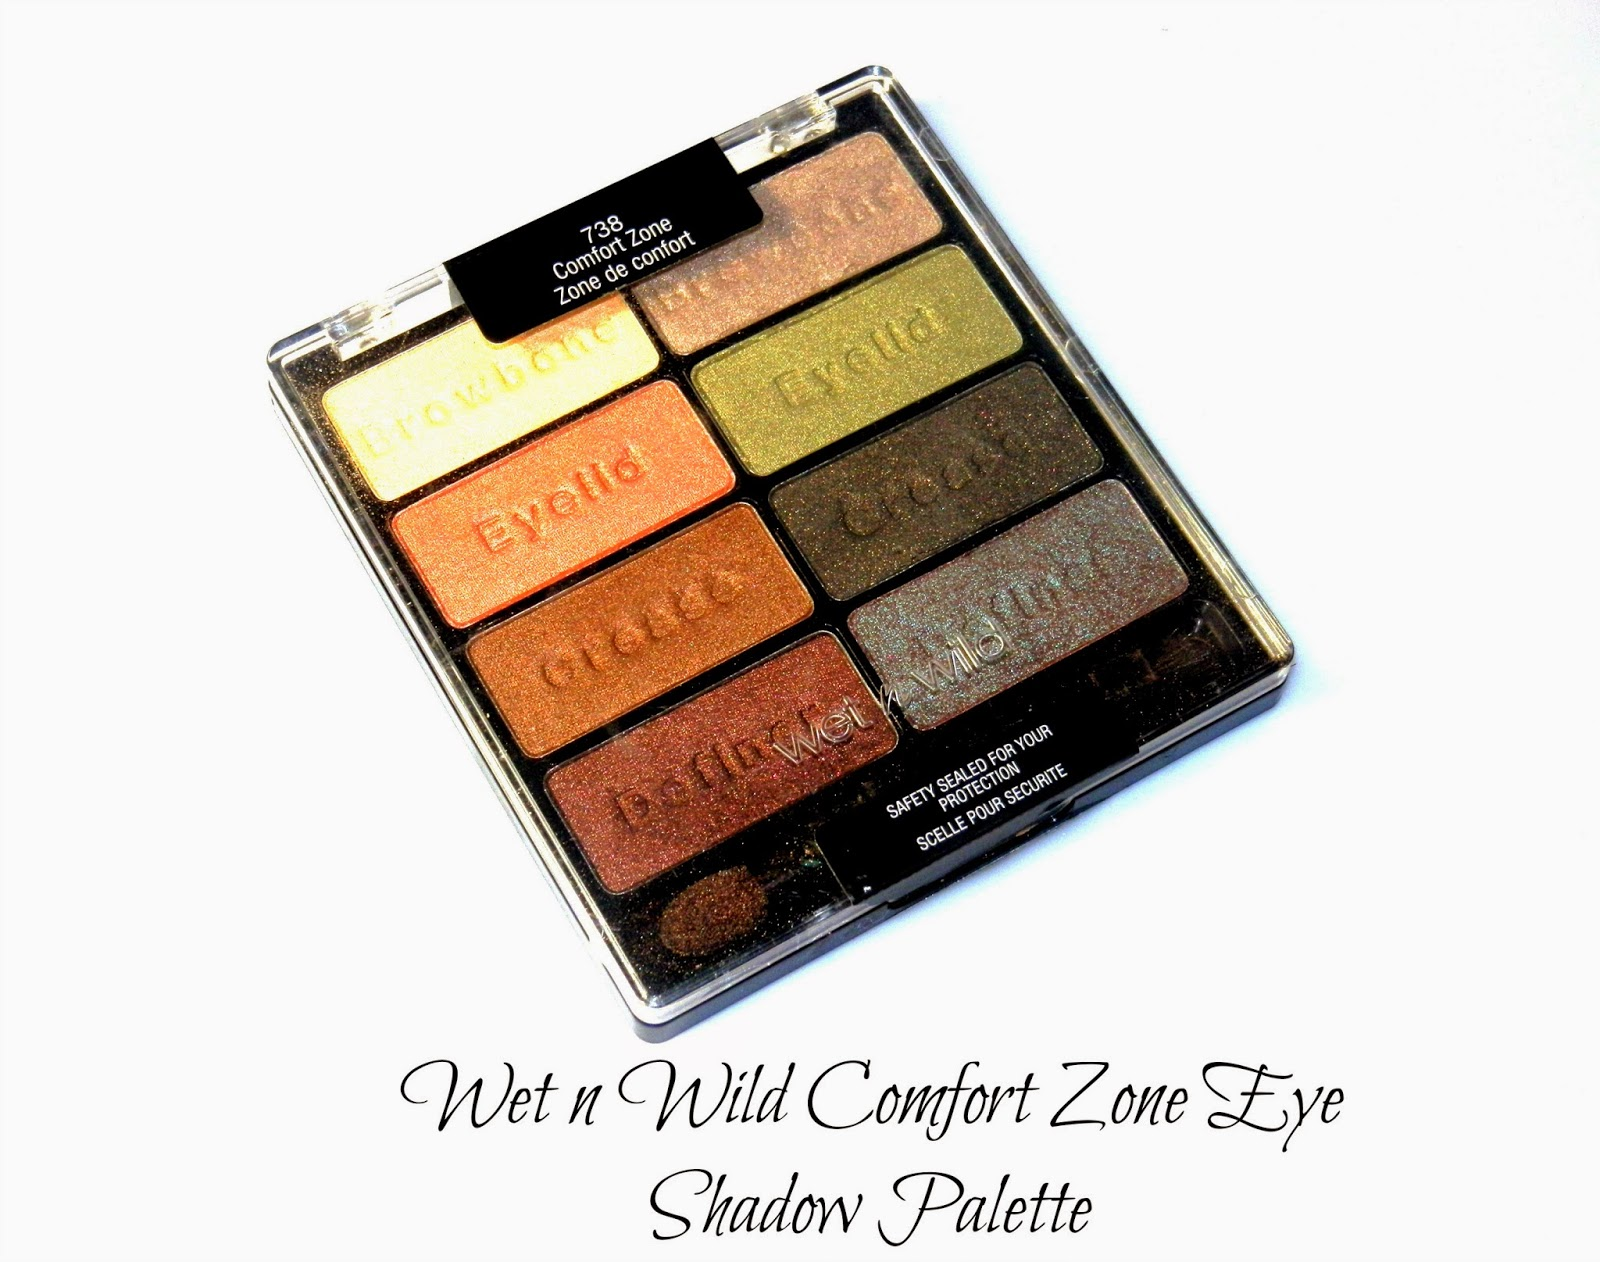 Wet n Wild Comfort Zone Eye Shadow Palette Swatches